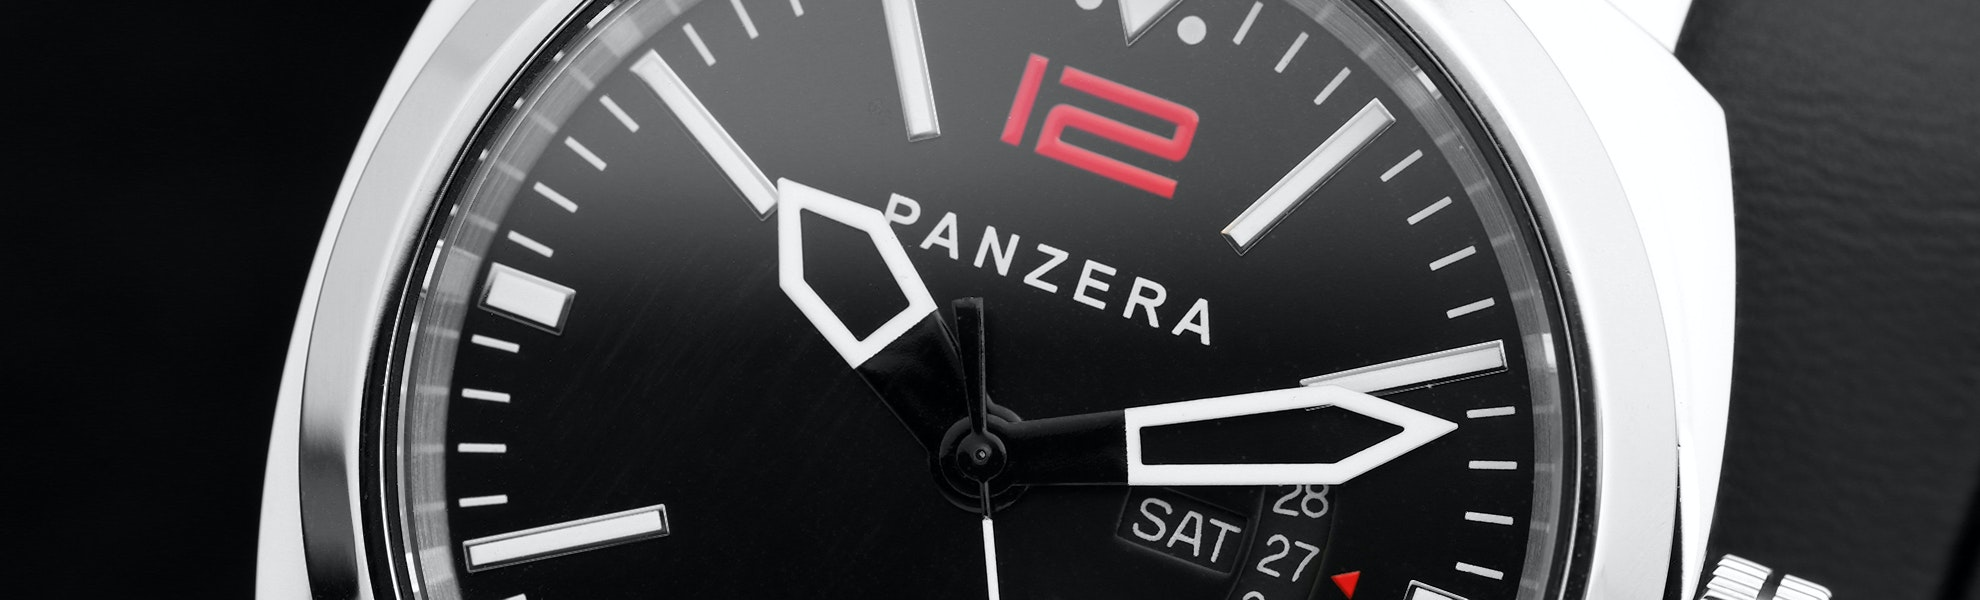 Panzera Aquamarine Watch